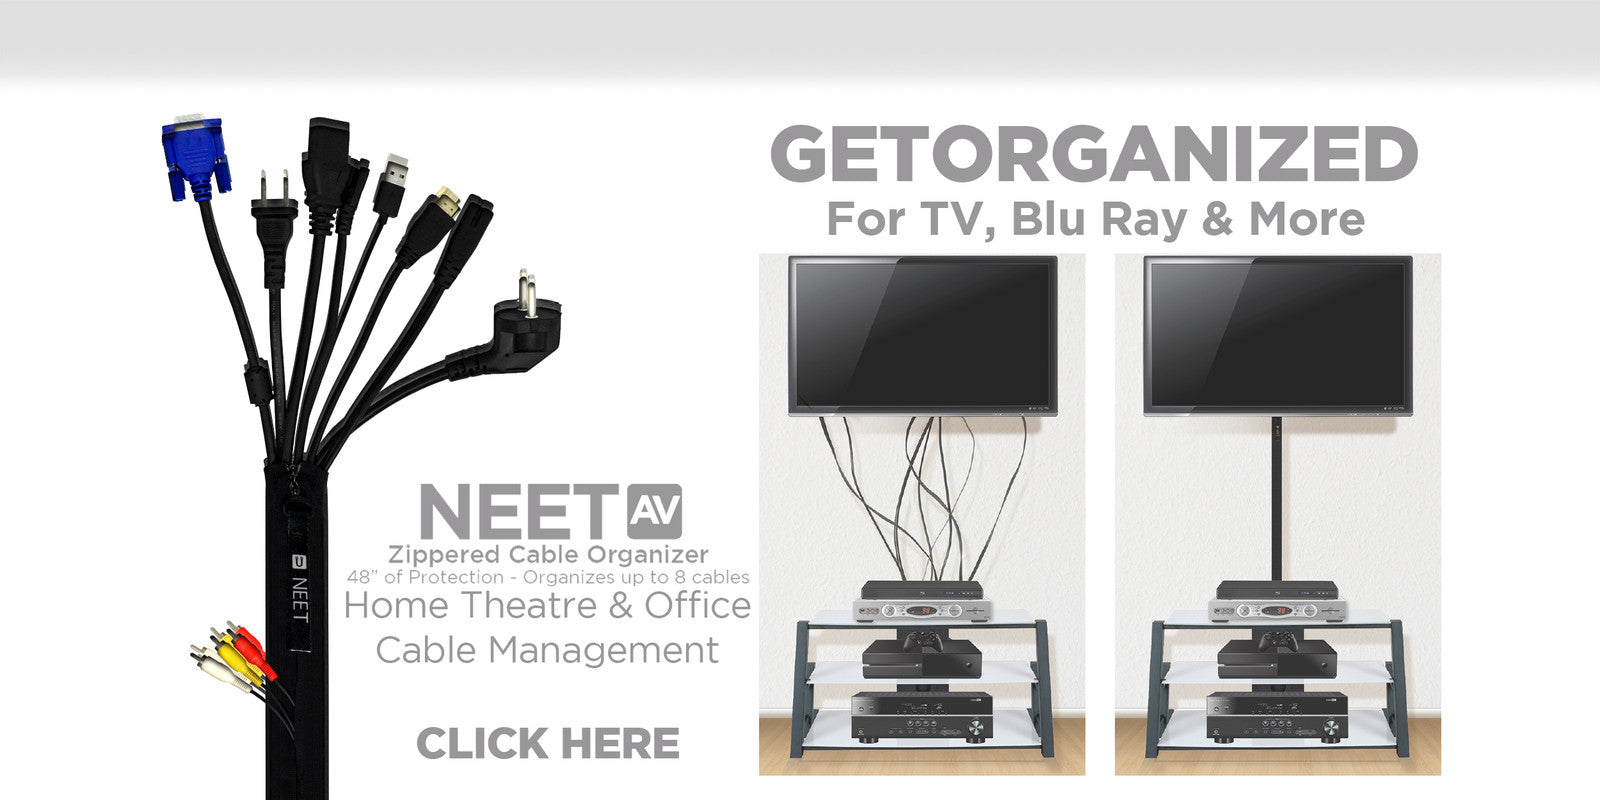 NEET Products : Cable Organizer